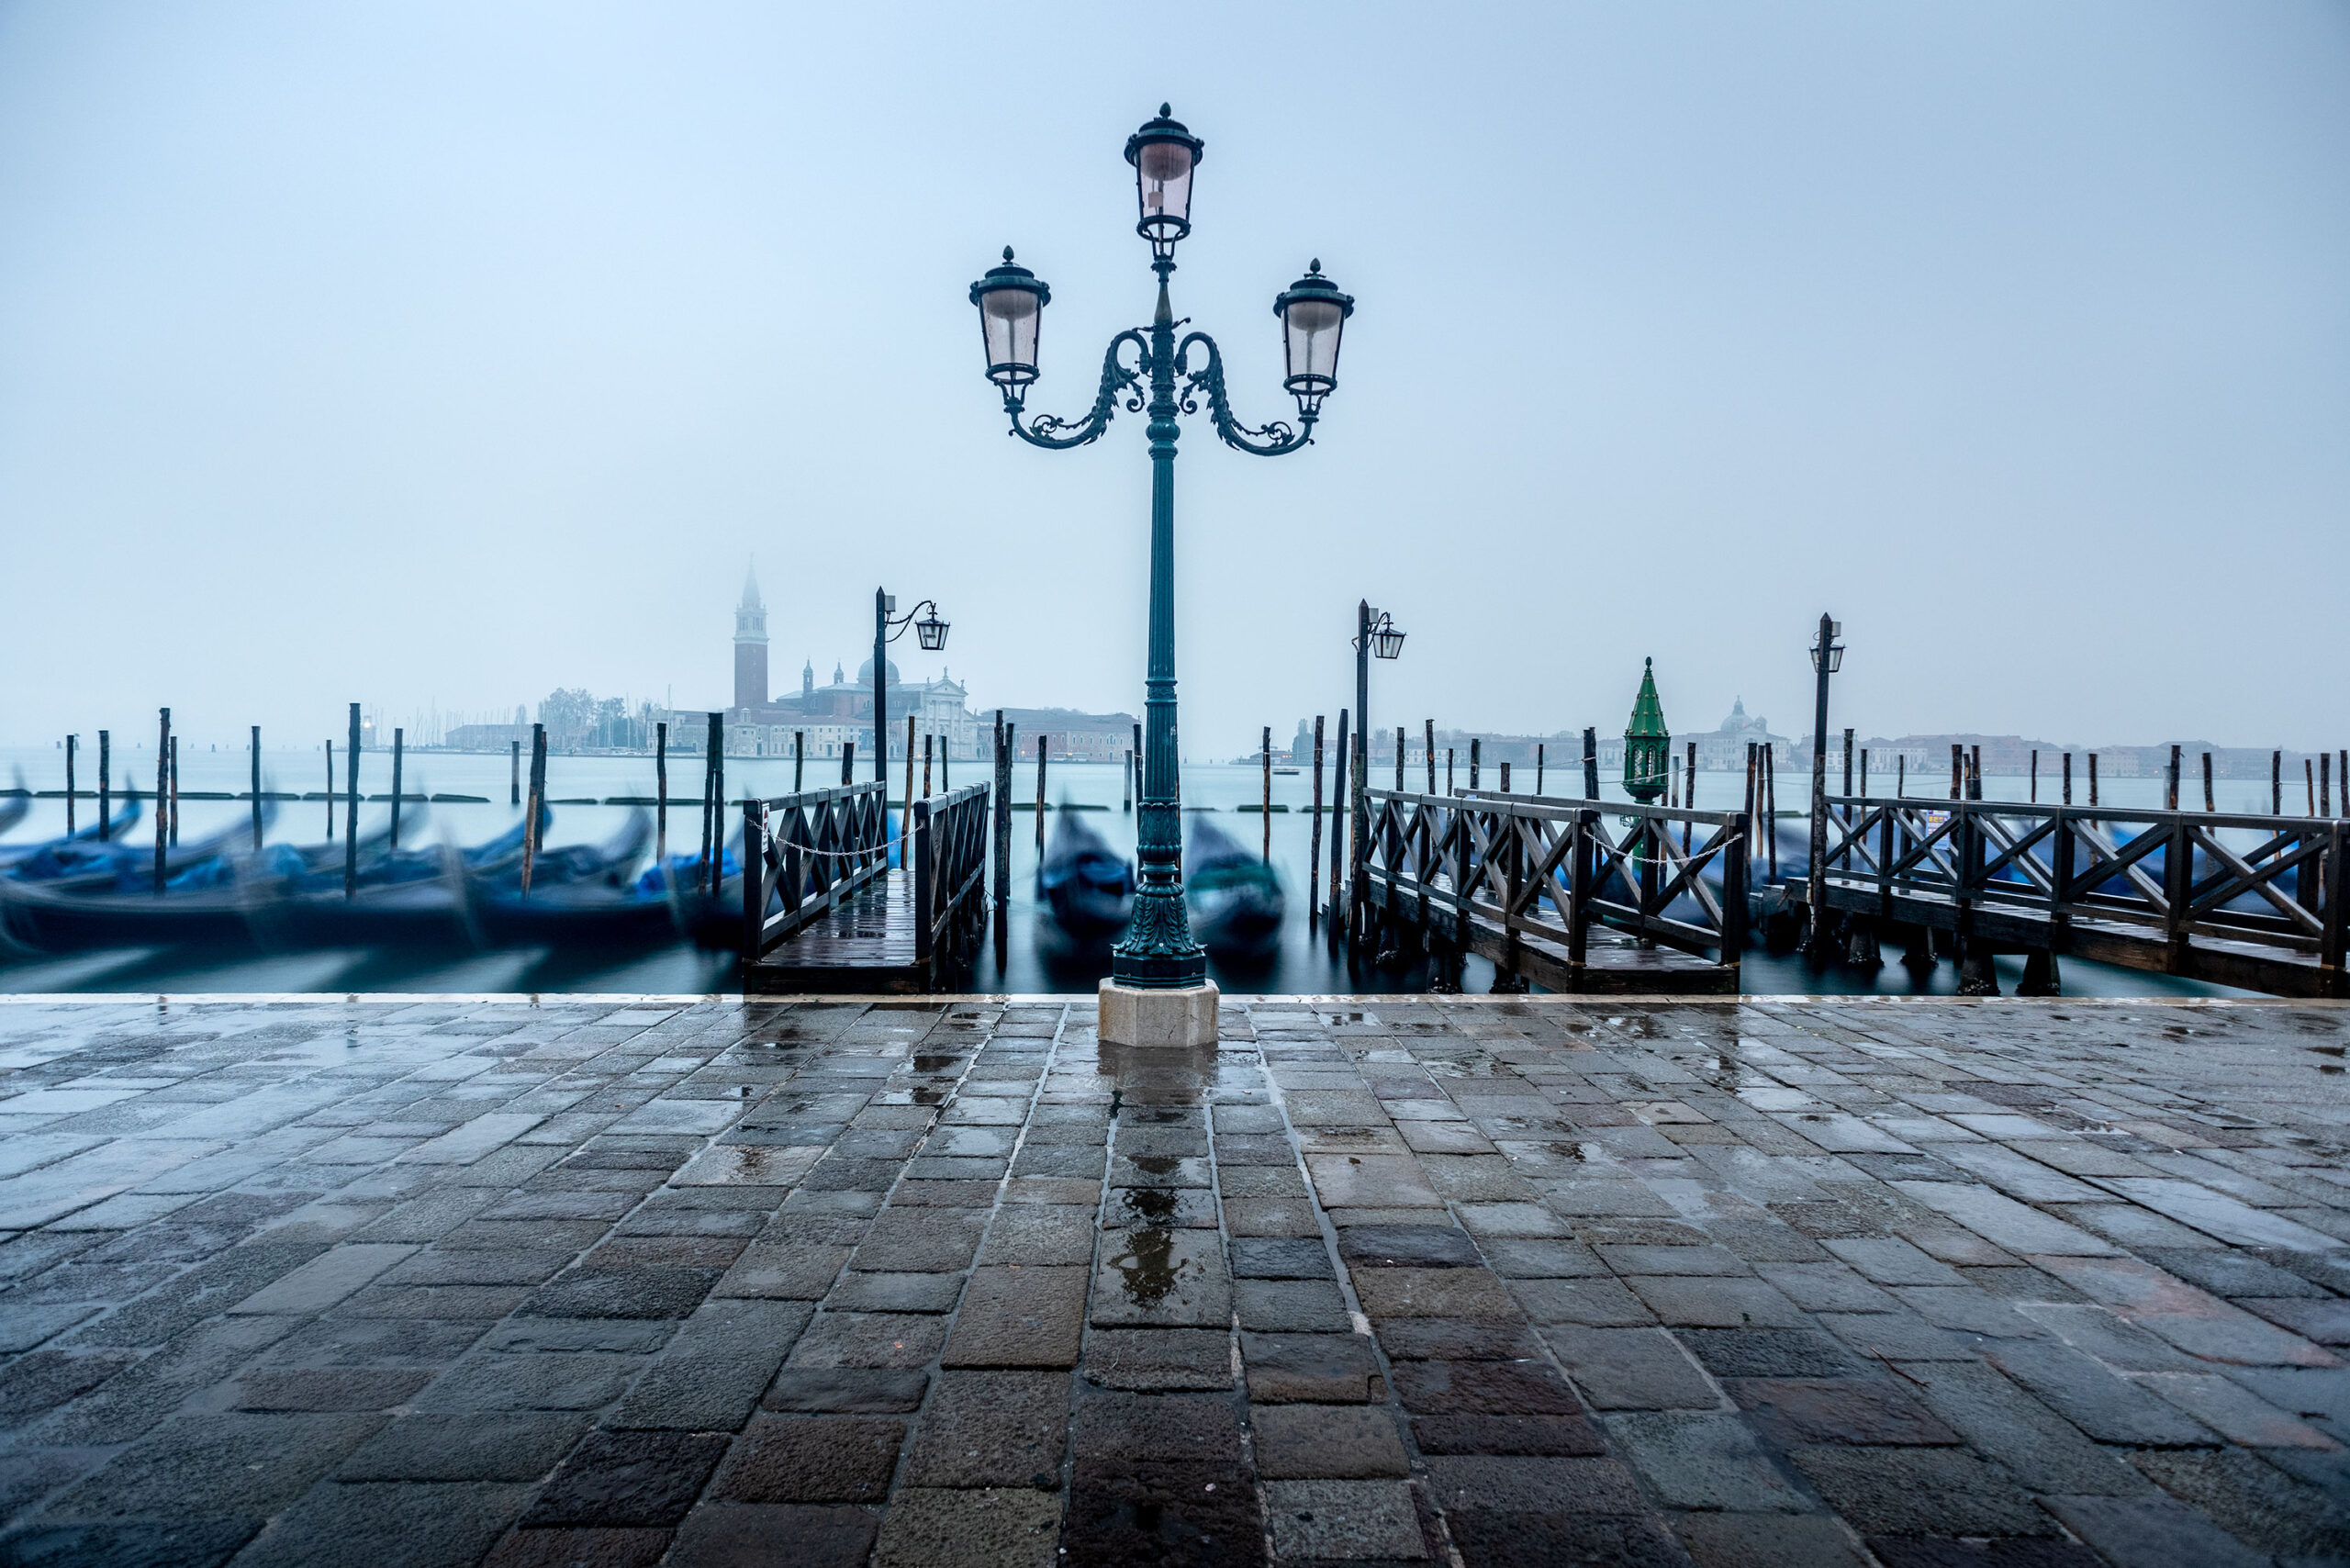 Long time exposure of the Piazza San Marco in Venice by a rainy day.